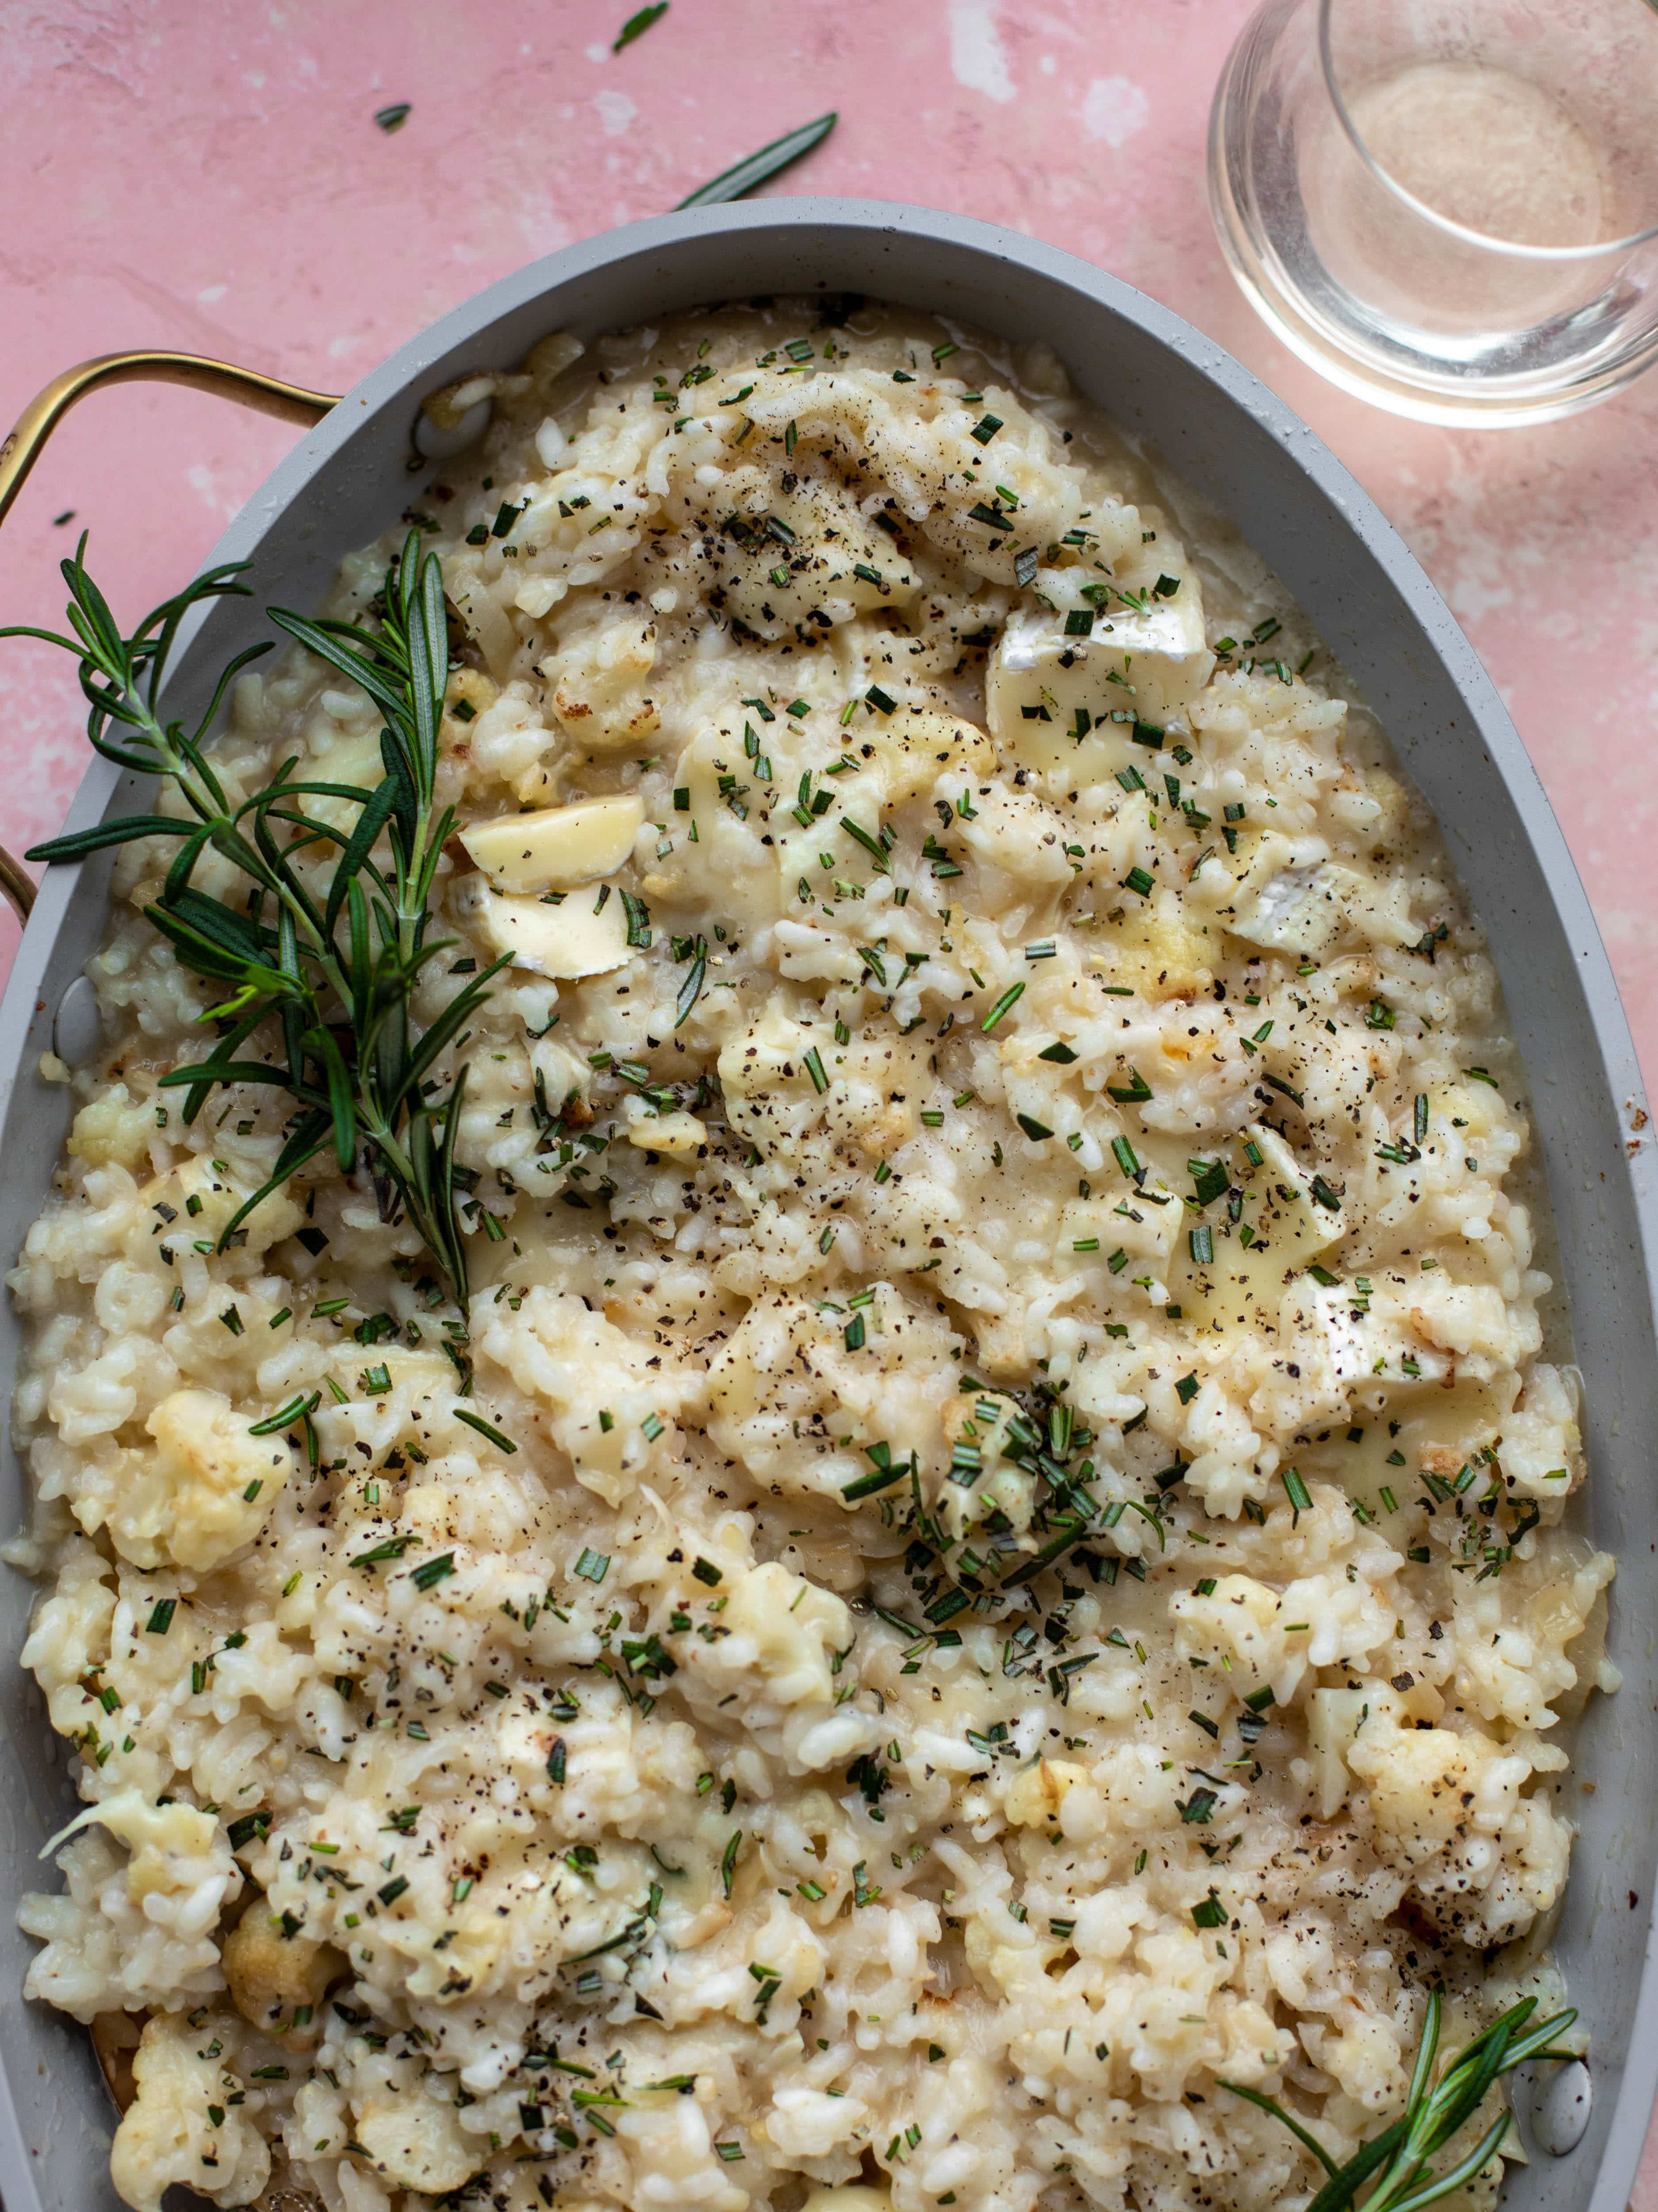 This baked risotto is delicious and so much easier than the stovetop version! Toasted cauliflower, brie cheese and rosemary make this taste incredible.